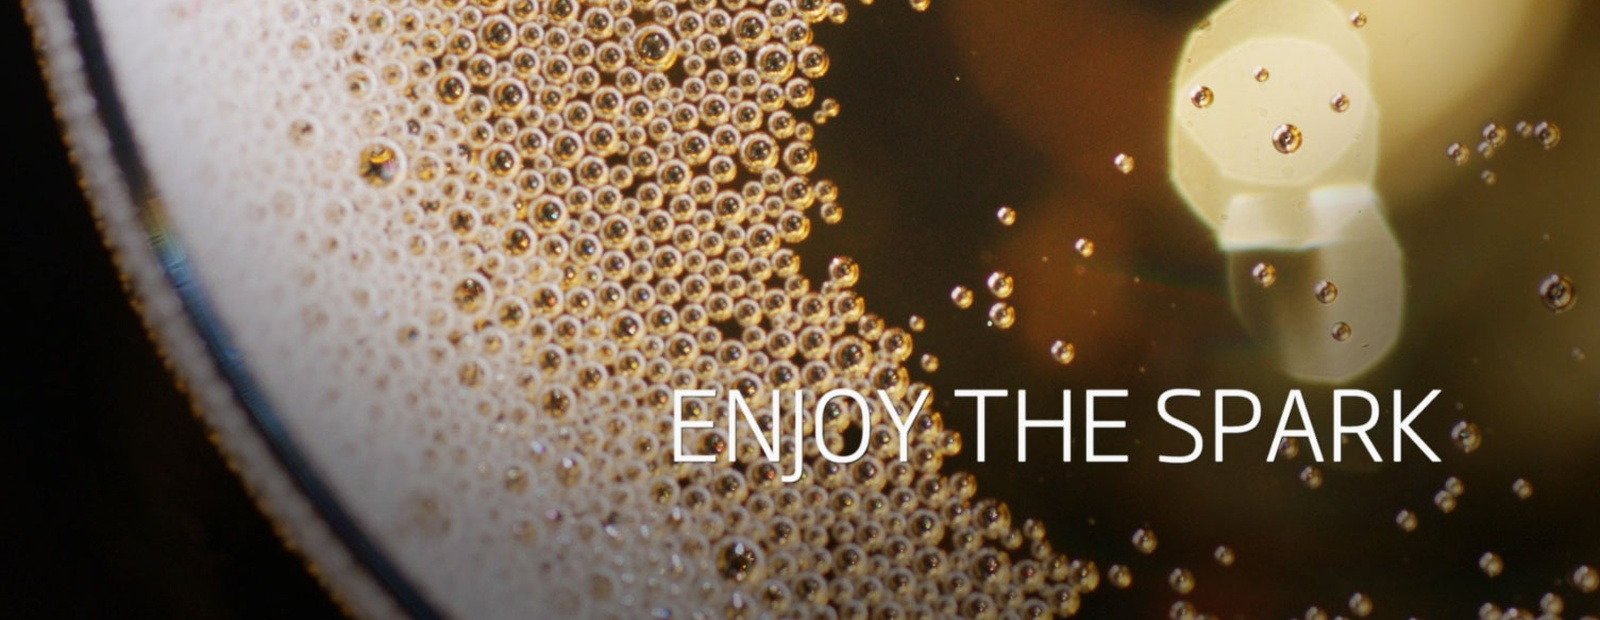 #EnjoyTheSpark with Chandon